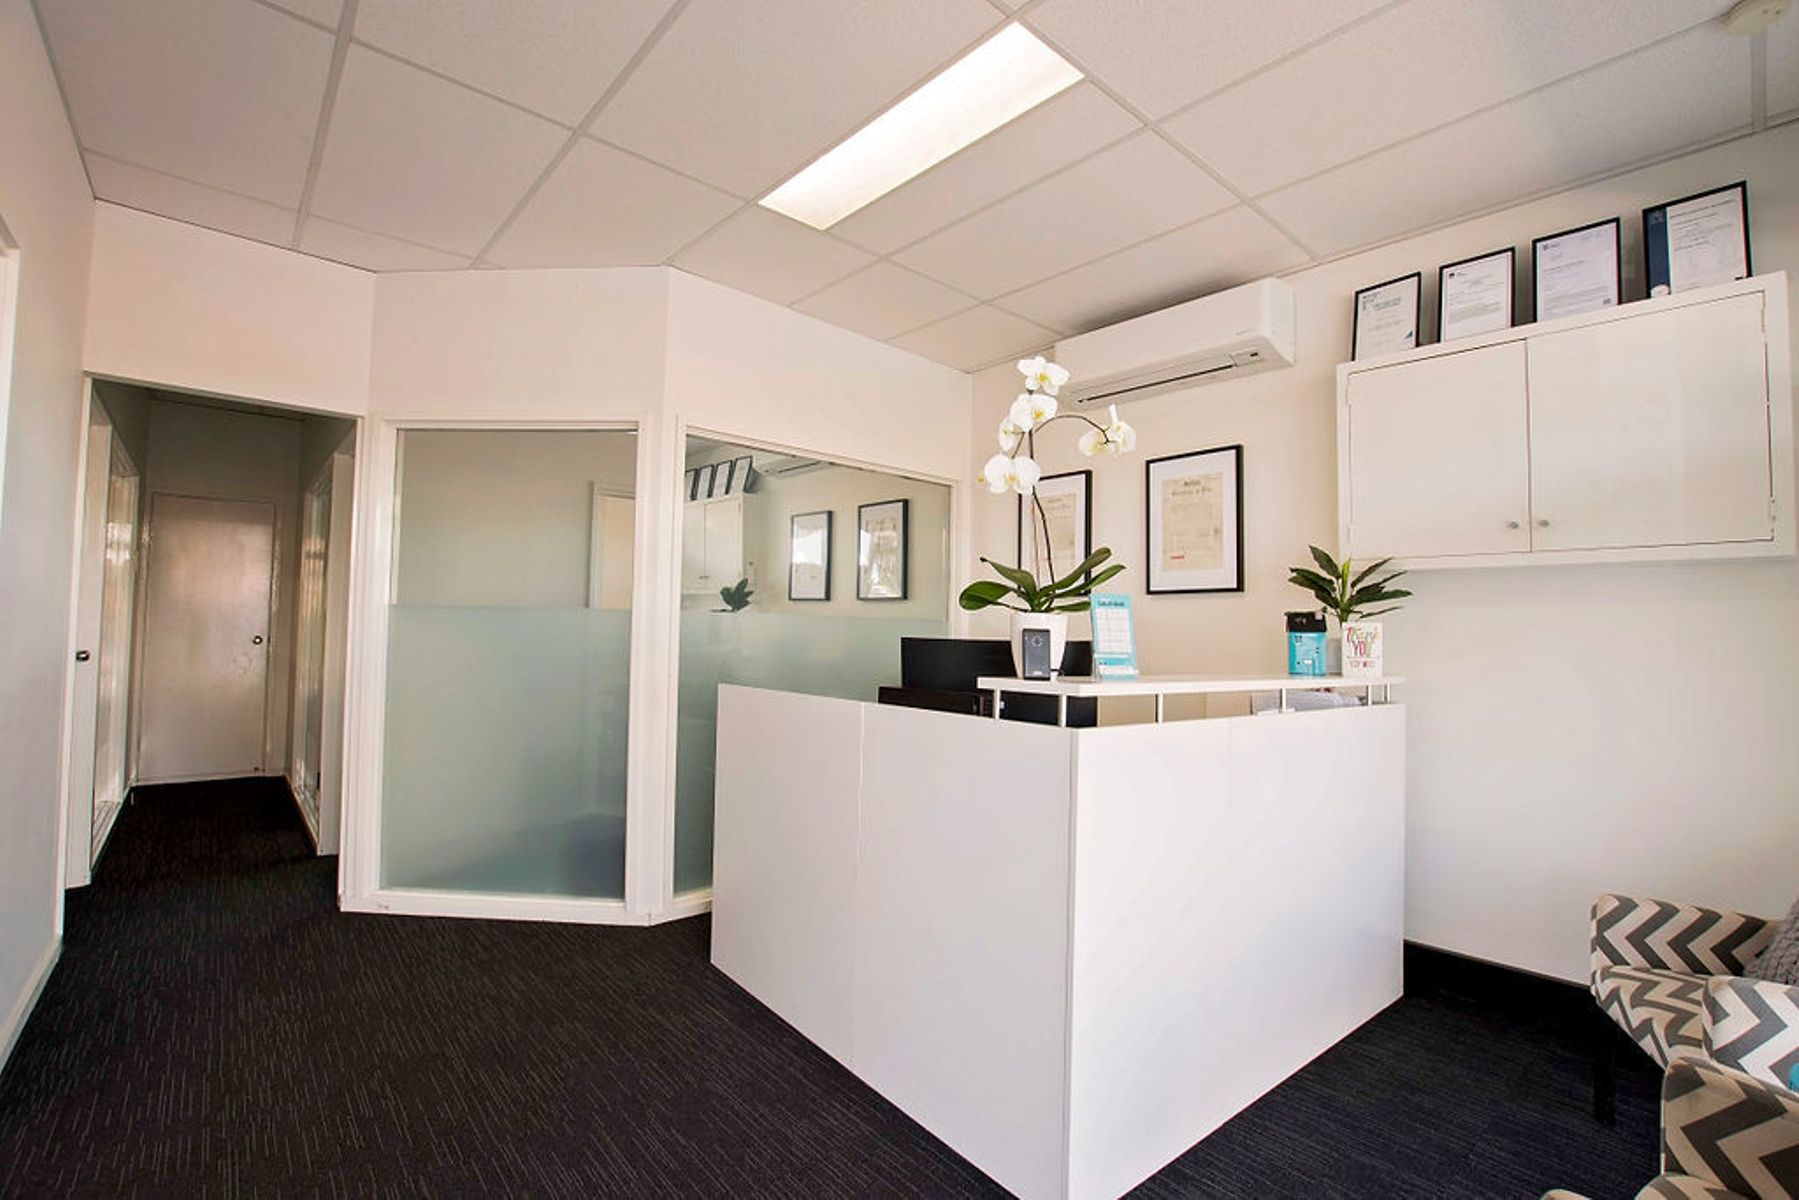 124 Hare St, Echuca VIC 3564, Australia, Offices for Sale